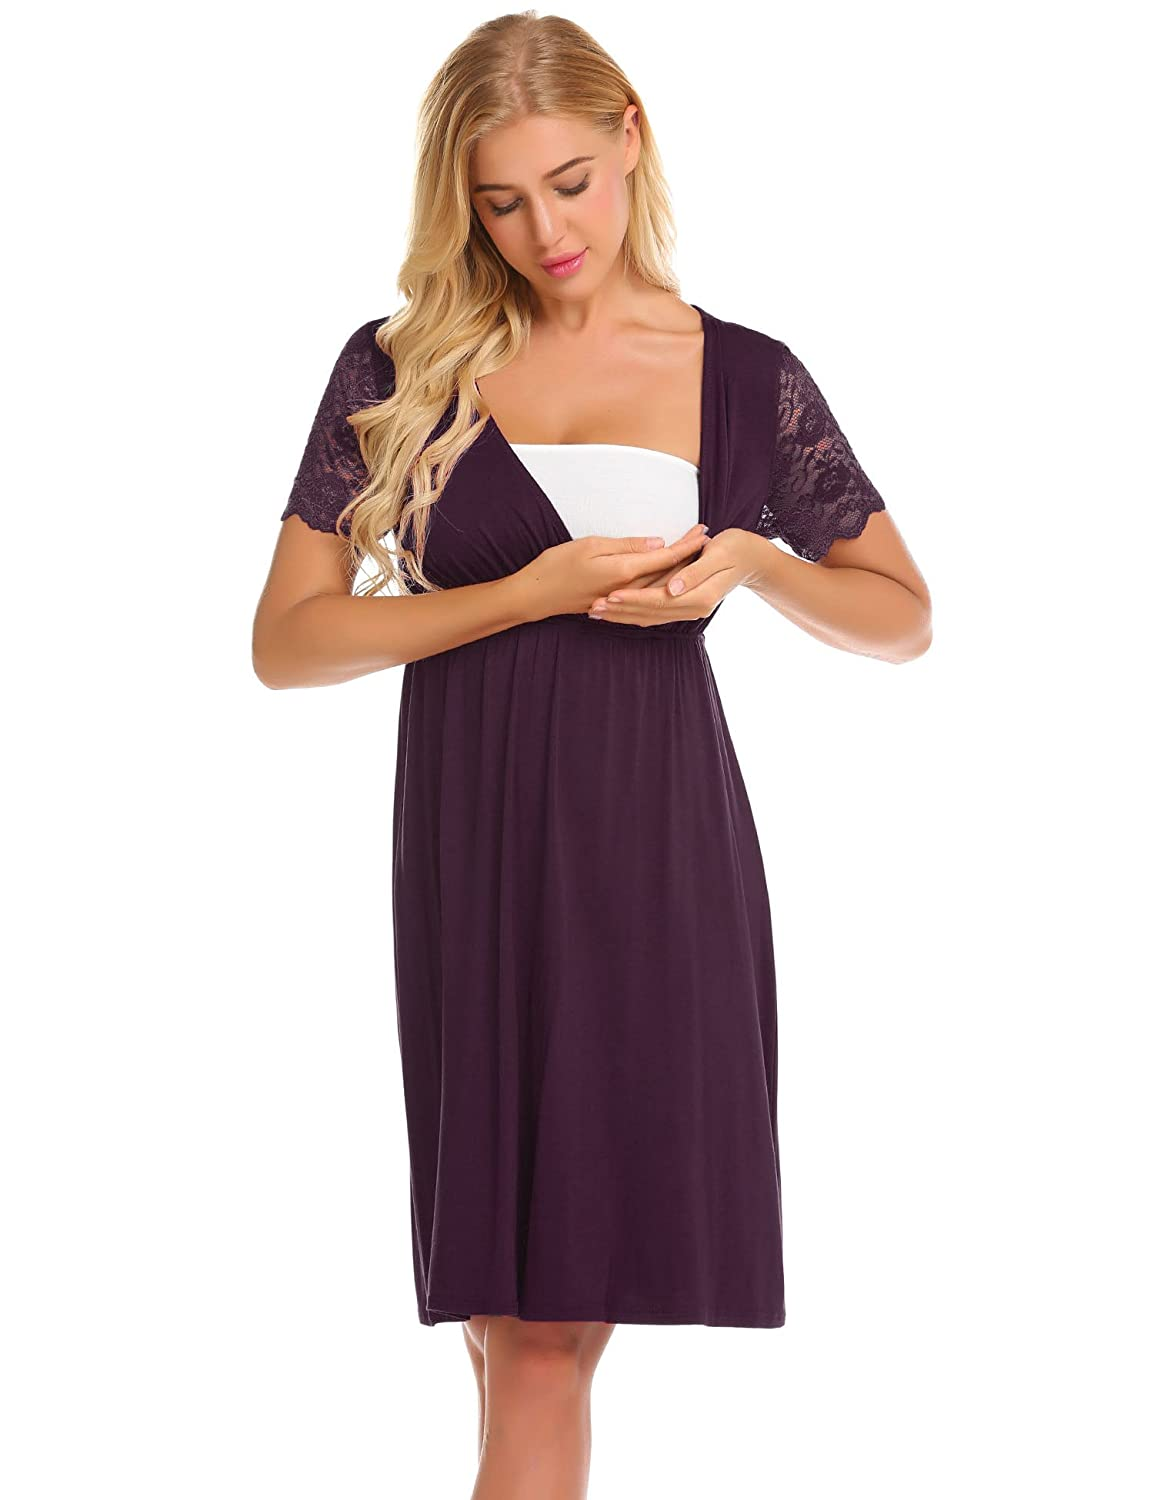 MAXMODA Womens Delivery/Labor/Maternity/Nursing Nightgown Pregnancy ...